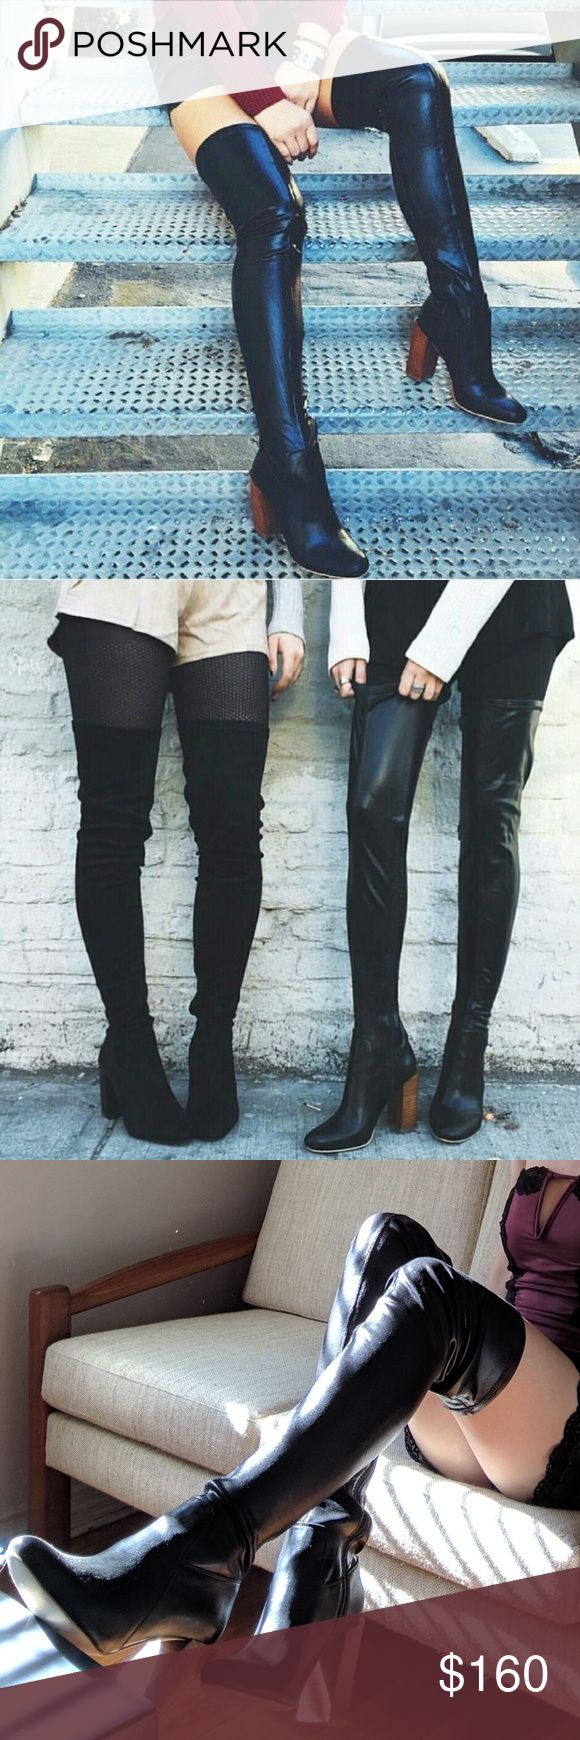 """Jeffrey Campbell Perouze Thigh High Leather Boots Jeffrey Campbell's leather-look witchy rocker boots. The Perouze. Featuring an almond toe, a chunky wooden heel, stretchy faux leather shaft, and an inner zip closure... Only worn twice, these are practically new and in excellent condition. Actual boots are featured in the third photo. Questions? Want more pictures? Feel free to comment.  - Leather insole only - Heel: 4 1/3"""" - Shaft: 24 1/2"""" - Opening Circumference: 16 1/2"""" Jeffrey Campbell…"""